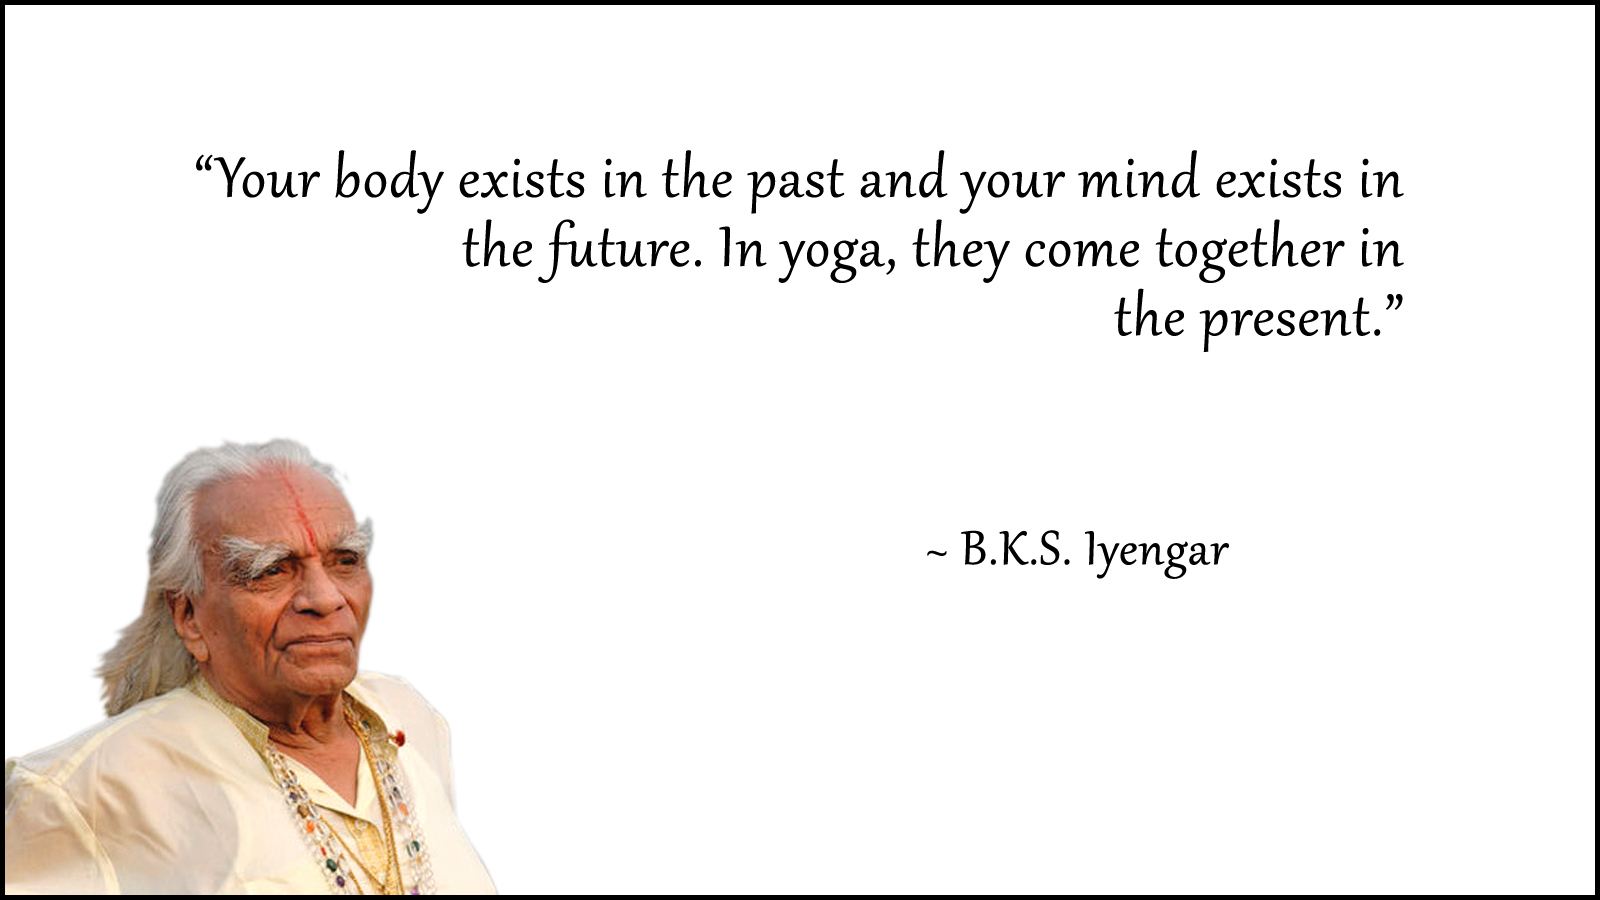 bks-iyengar-quote-yoga-past-future-present1